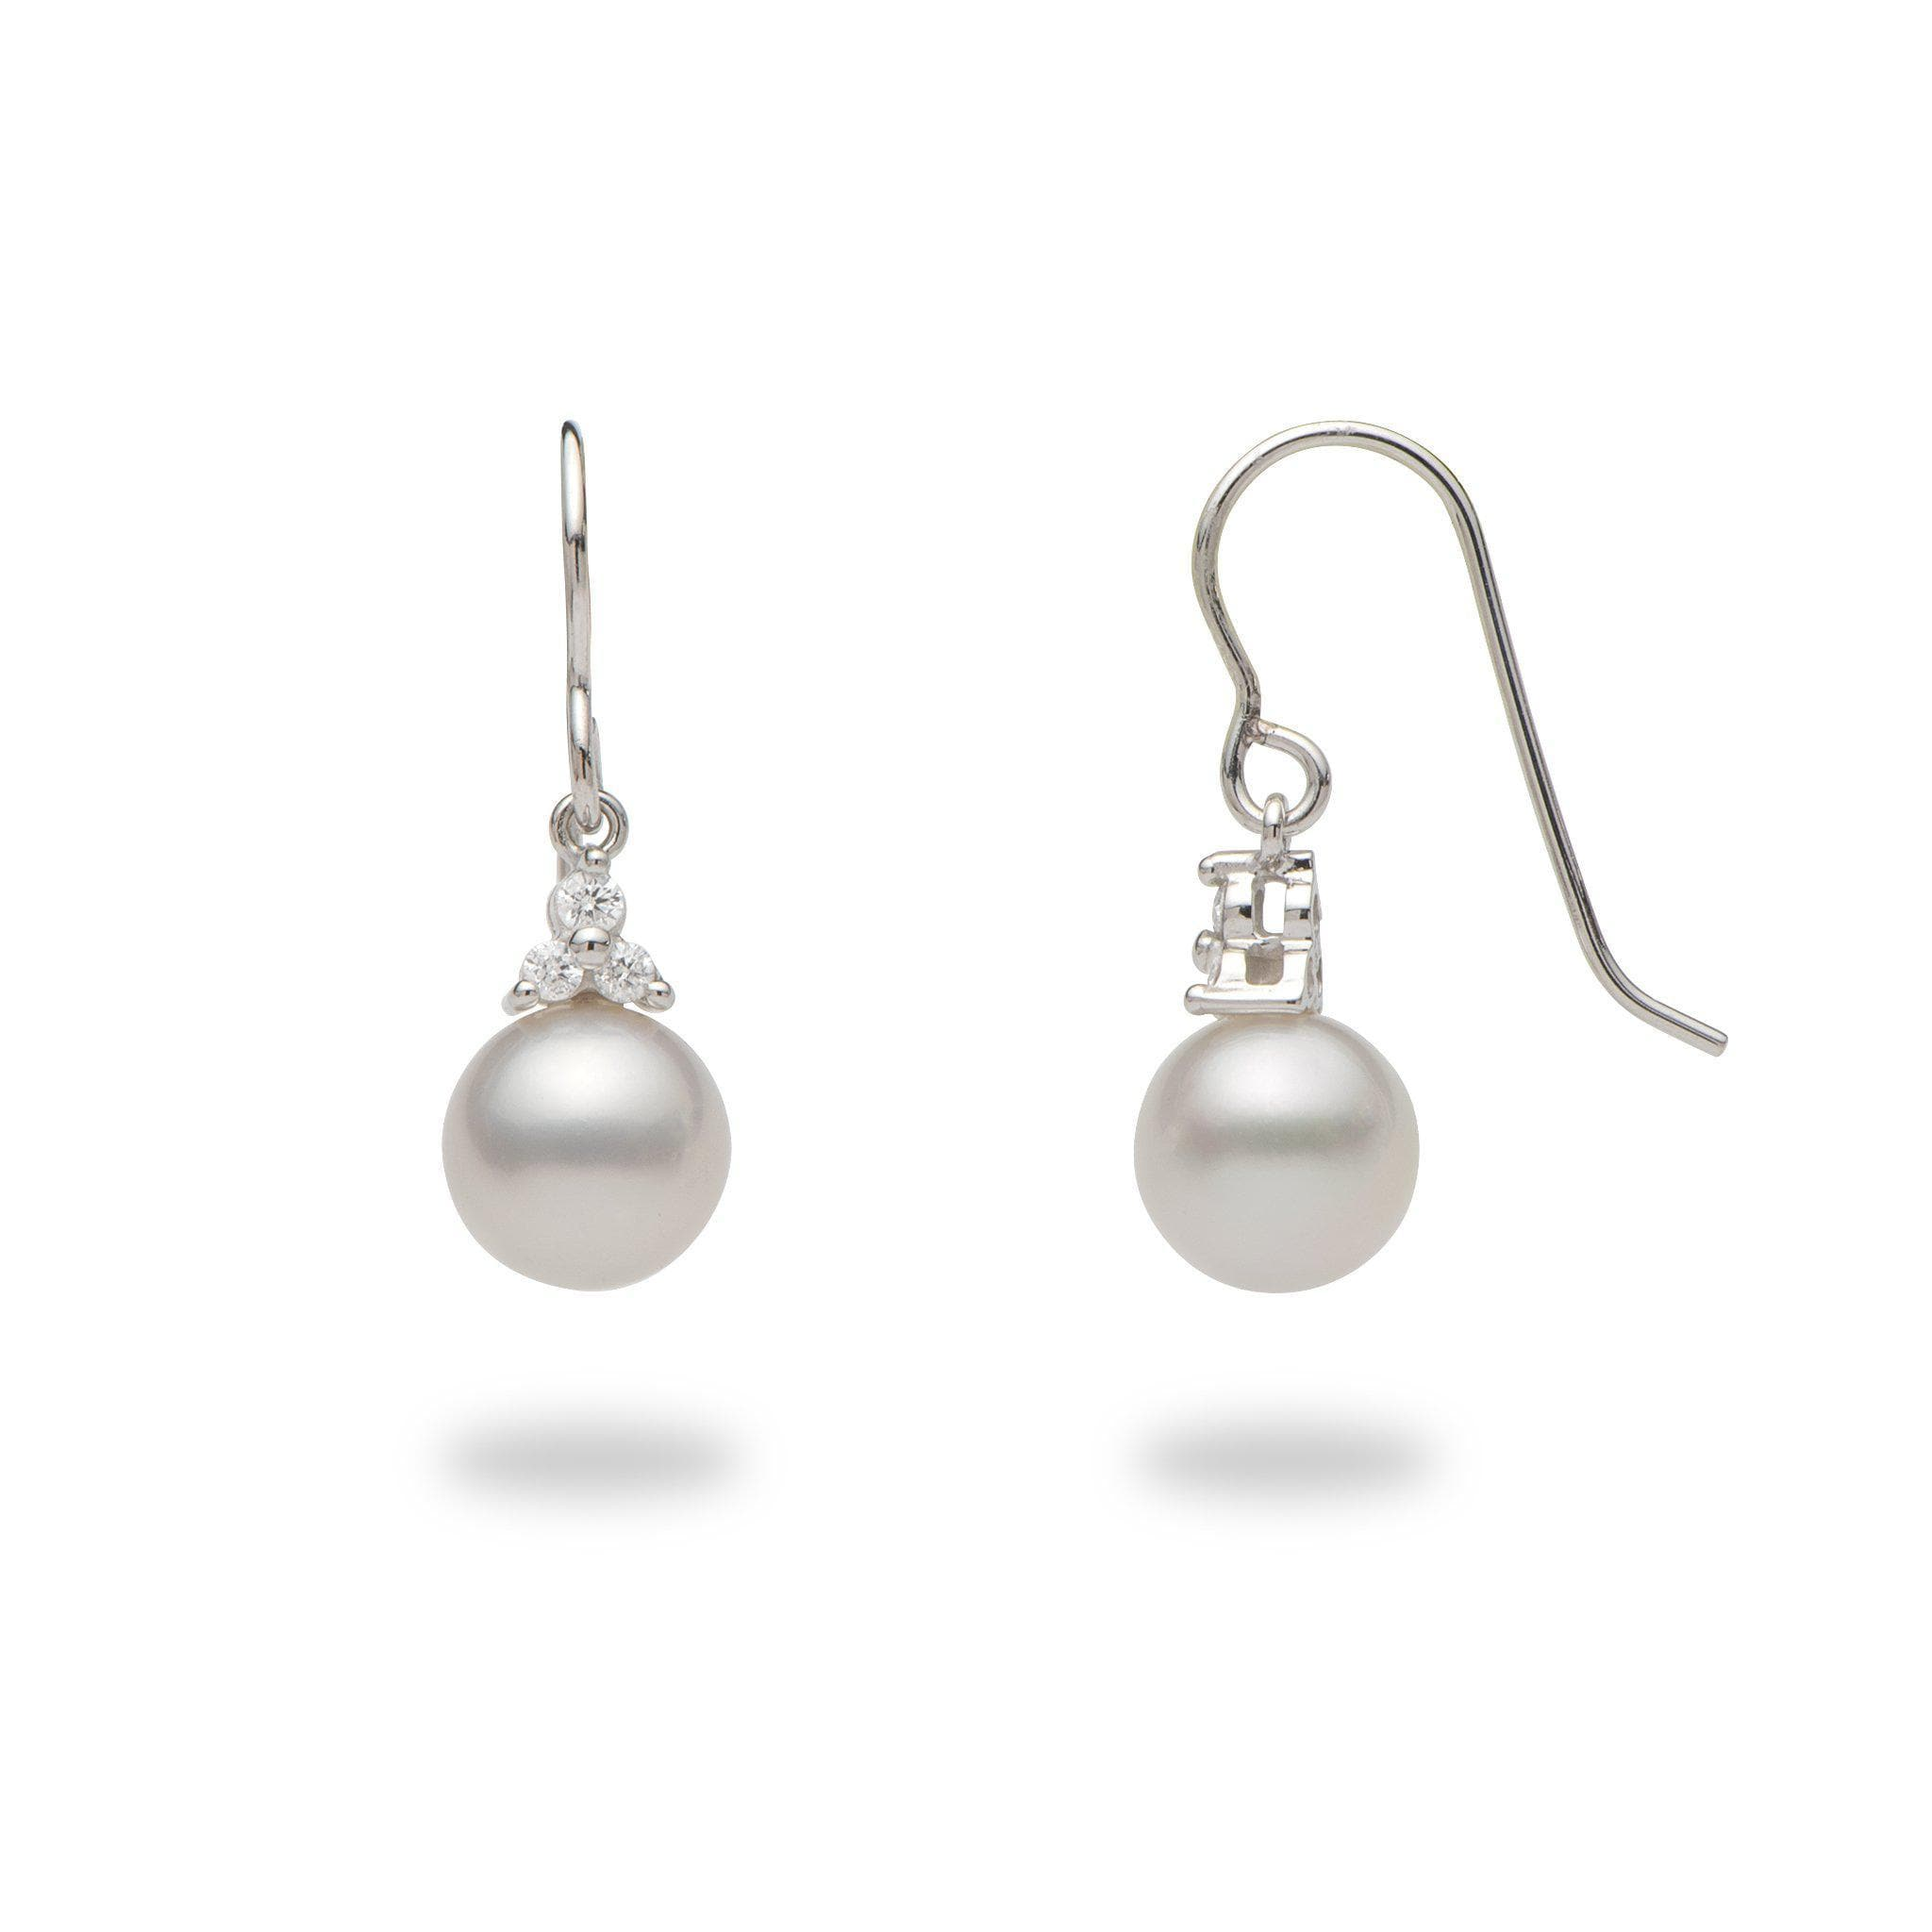 South Sea White Pearl (8-9mm) Earrings in 14k White Gold with Diamonds